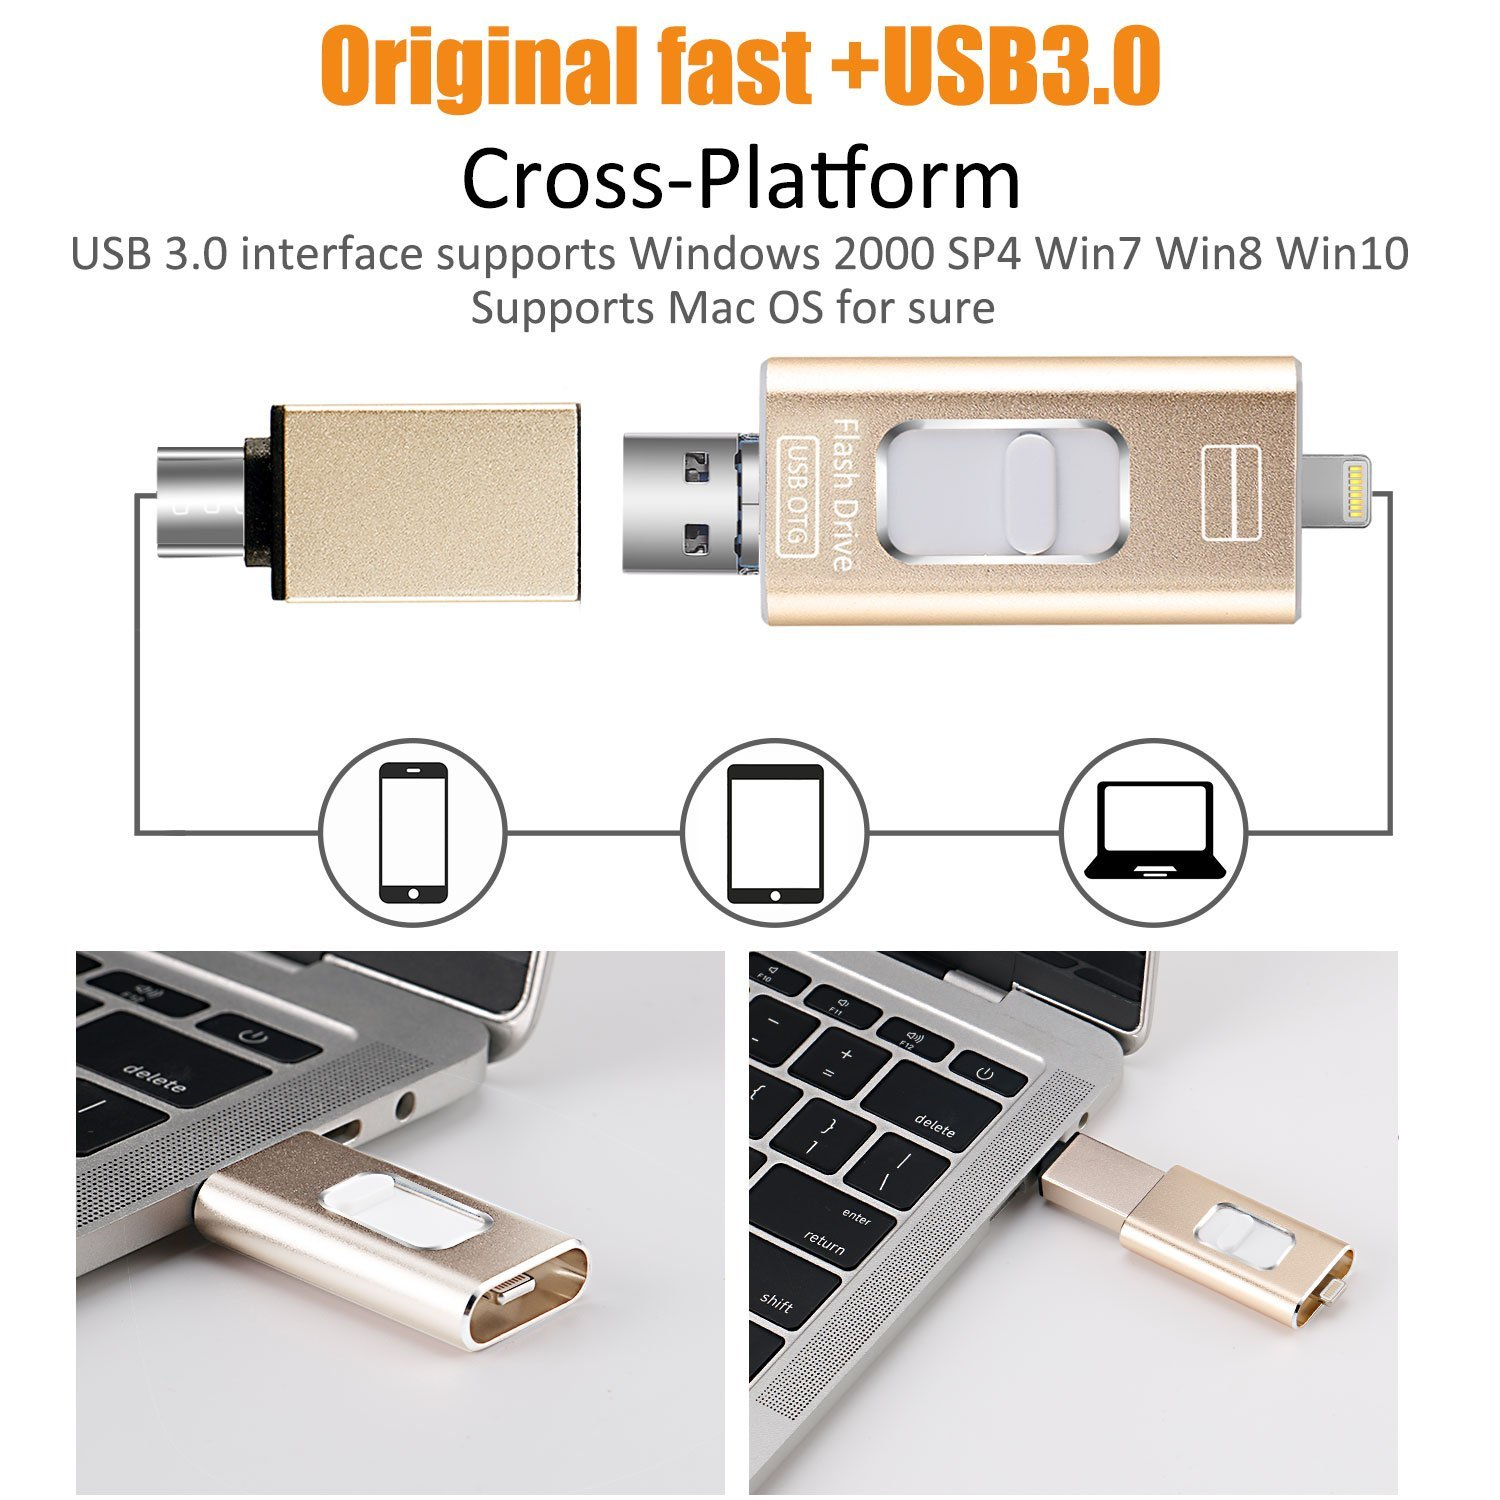 128GB 3 in 1 iPhone USB Flash Drive 128GB,iPhone Memory Flash Drive Pen Drive OTG Type-C,USB External Memory,iPhone USB Storage,Lightning Memory Stick for iPhone//ipad//iPod//Android//PC